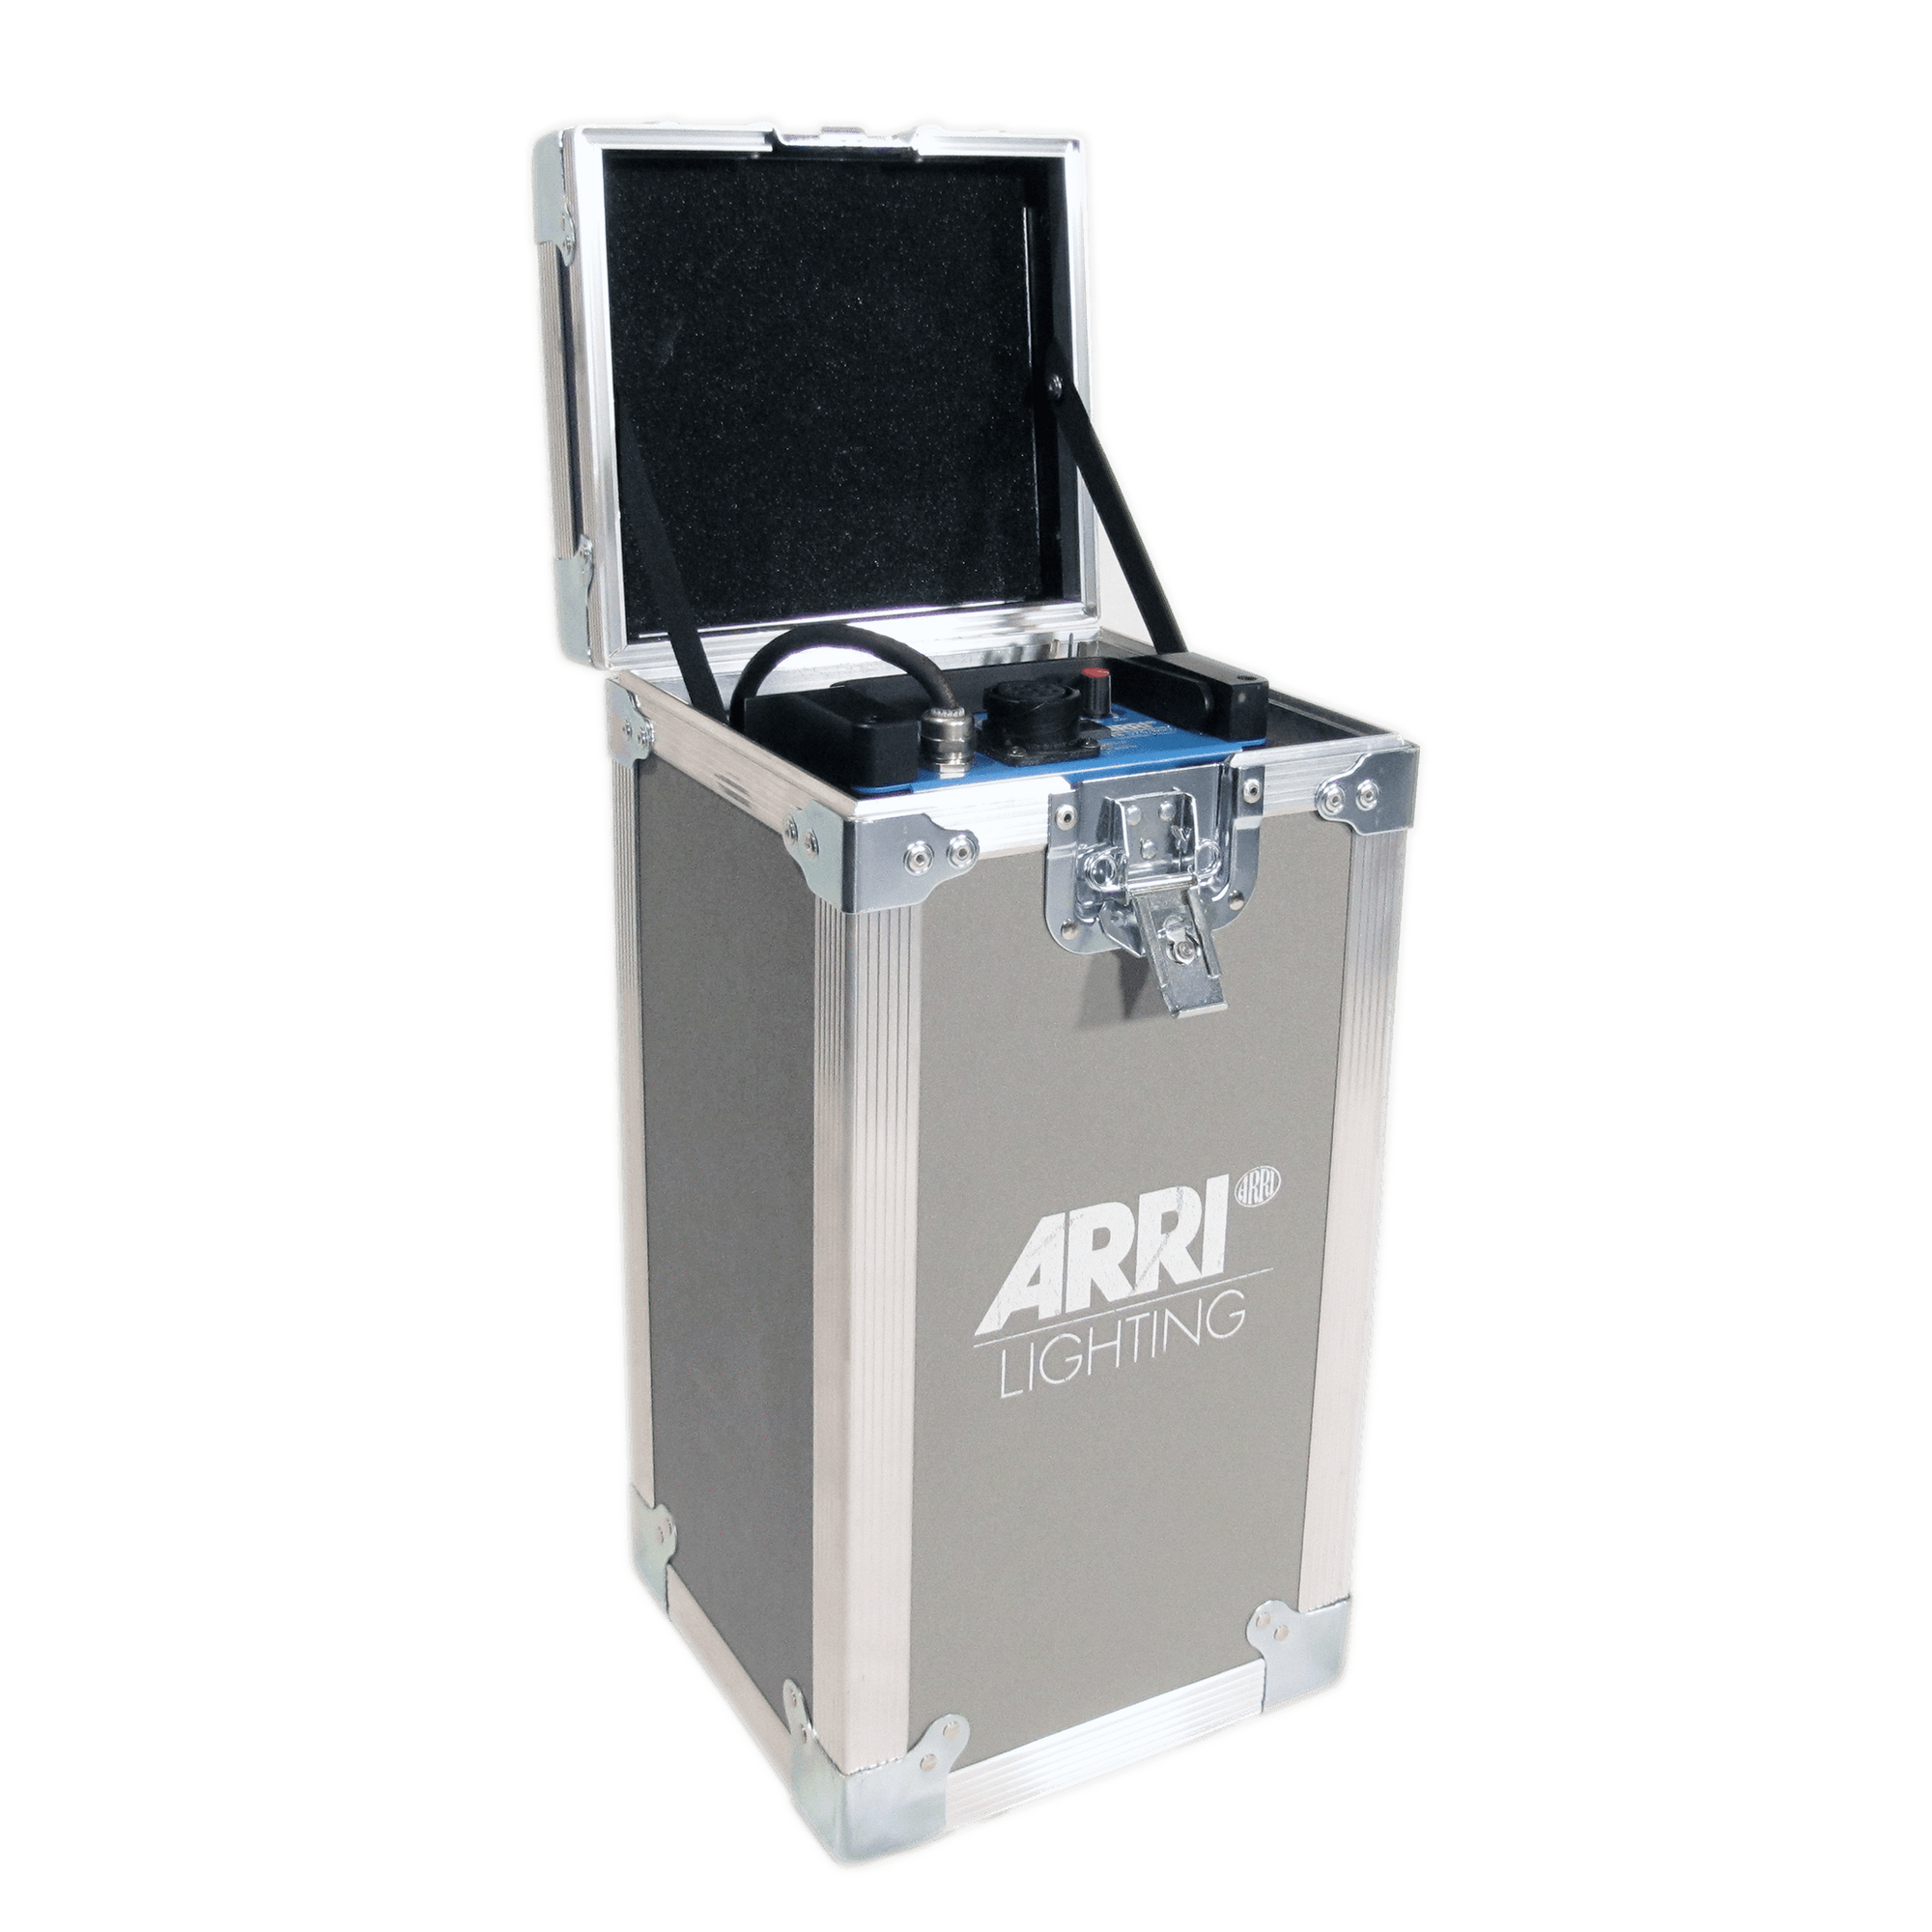 ARRI Case For 1.2/1.8 Ballast